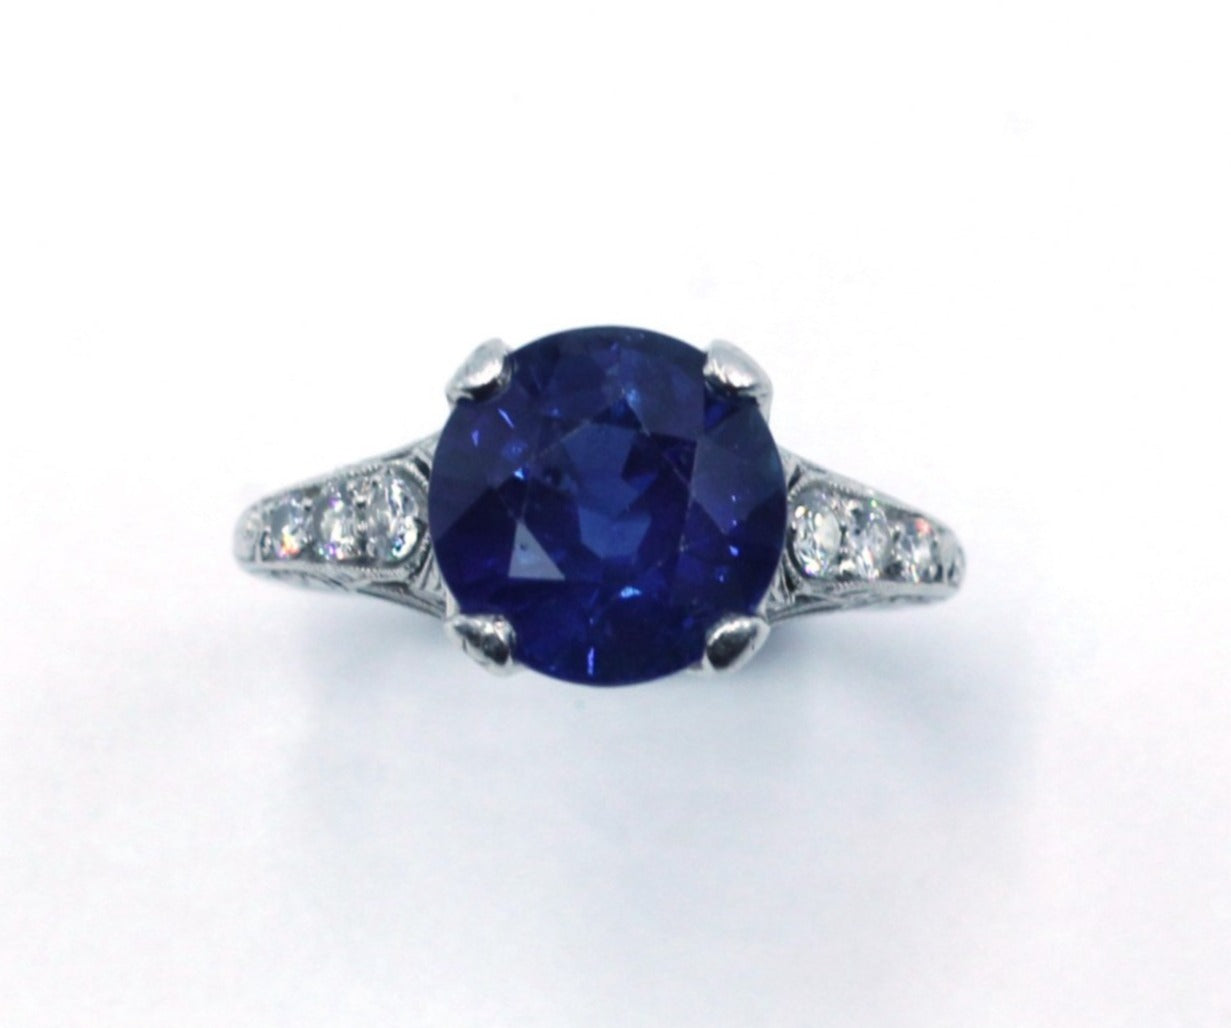 Vintage Sapphire Ring, SOLD